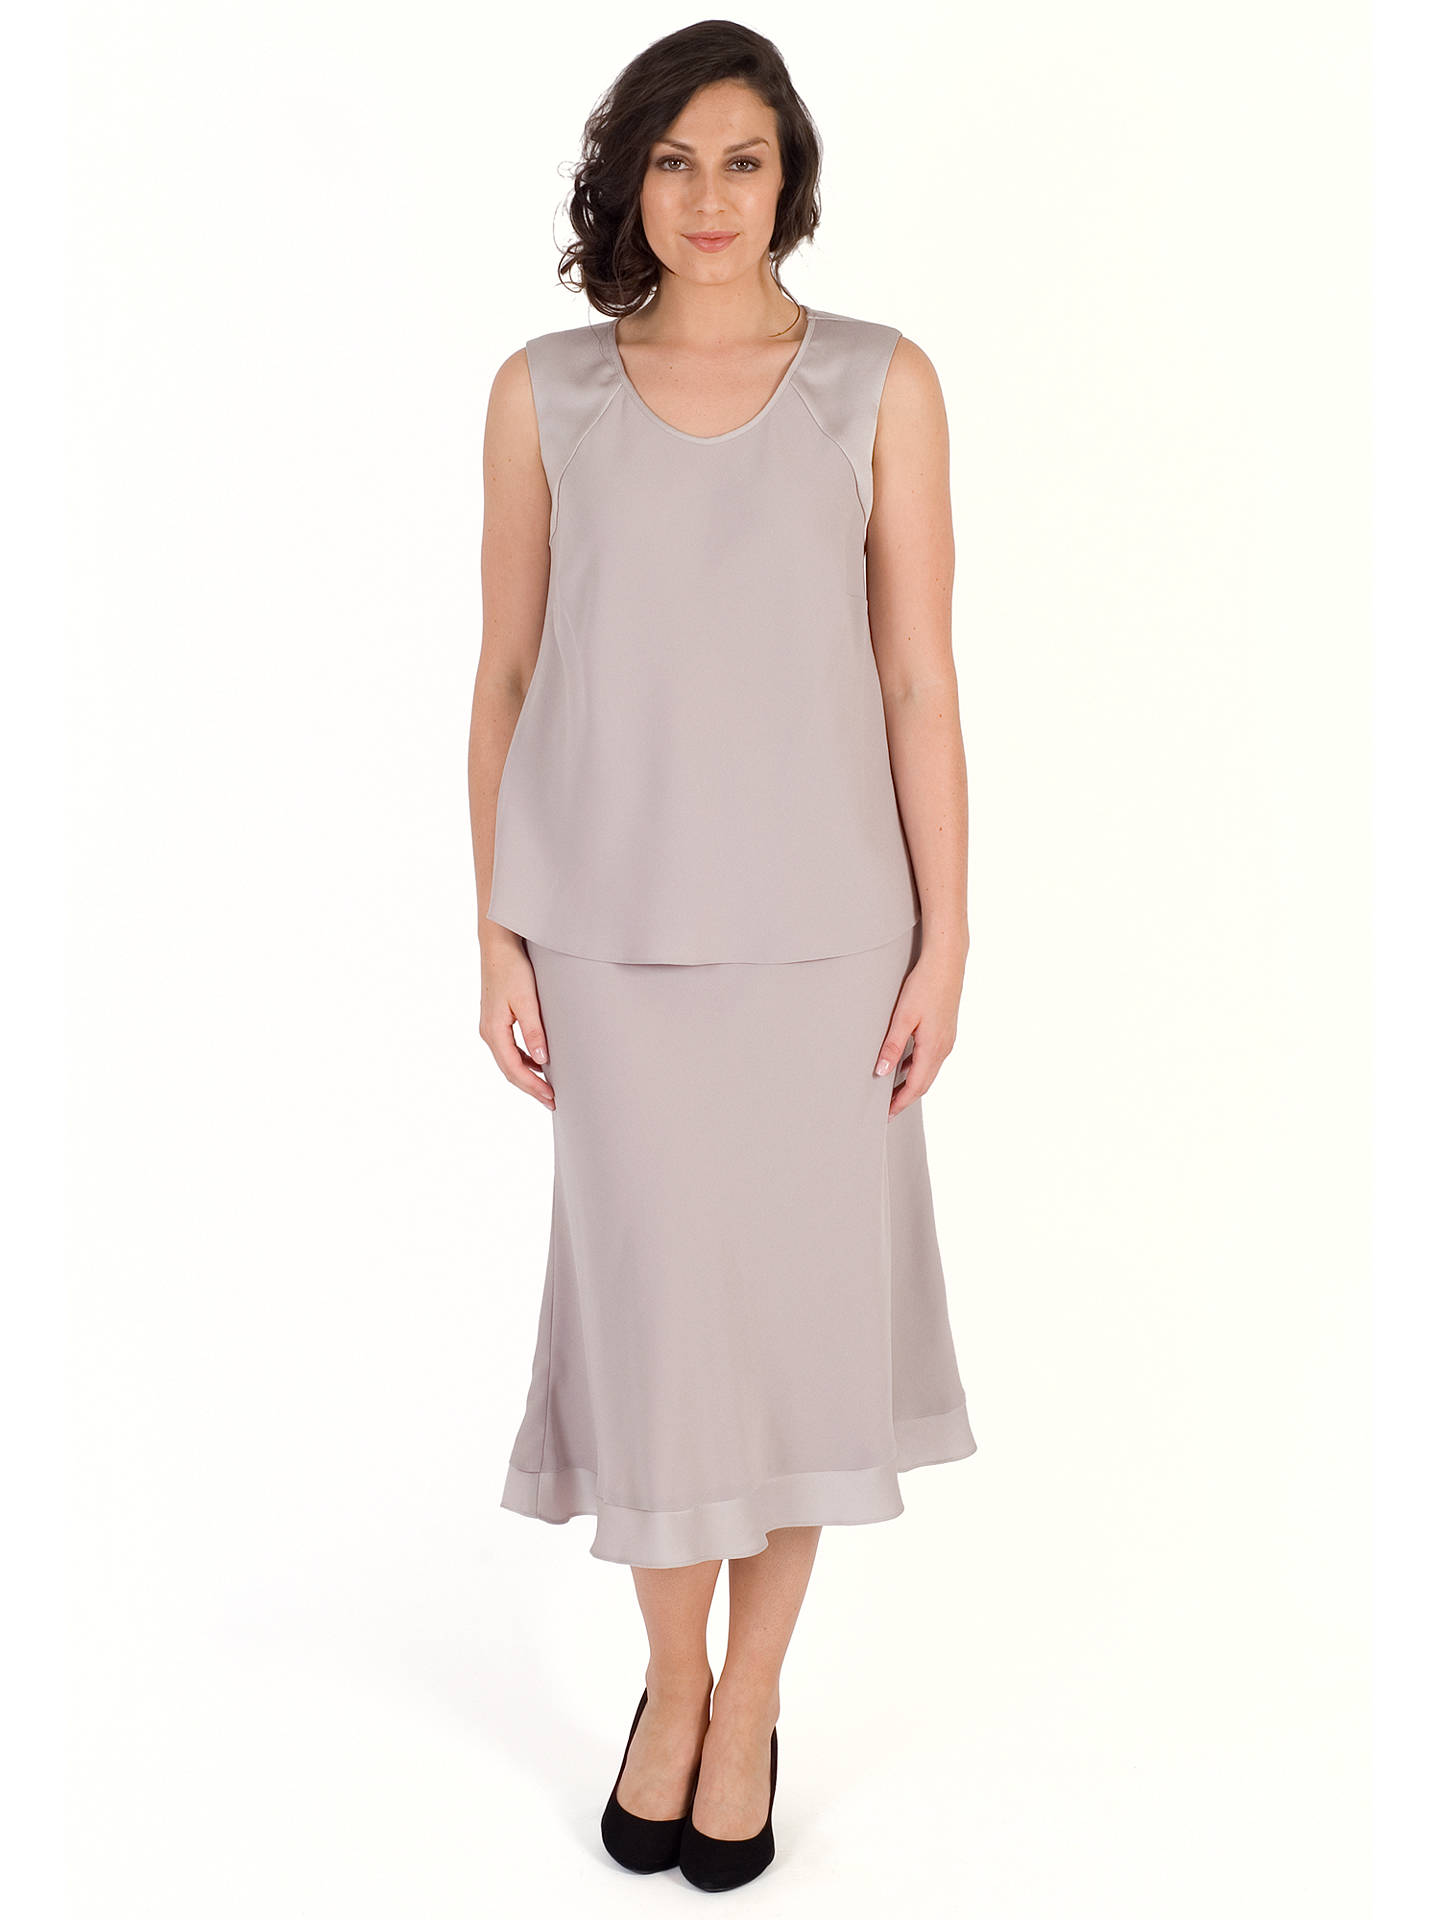 BuyChesca Satin Crepe Skirt, Mink, 12-14 Online at johnlewis.com